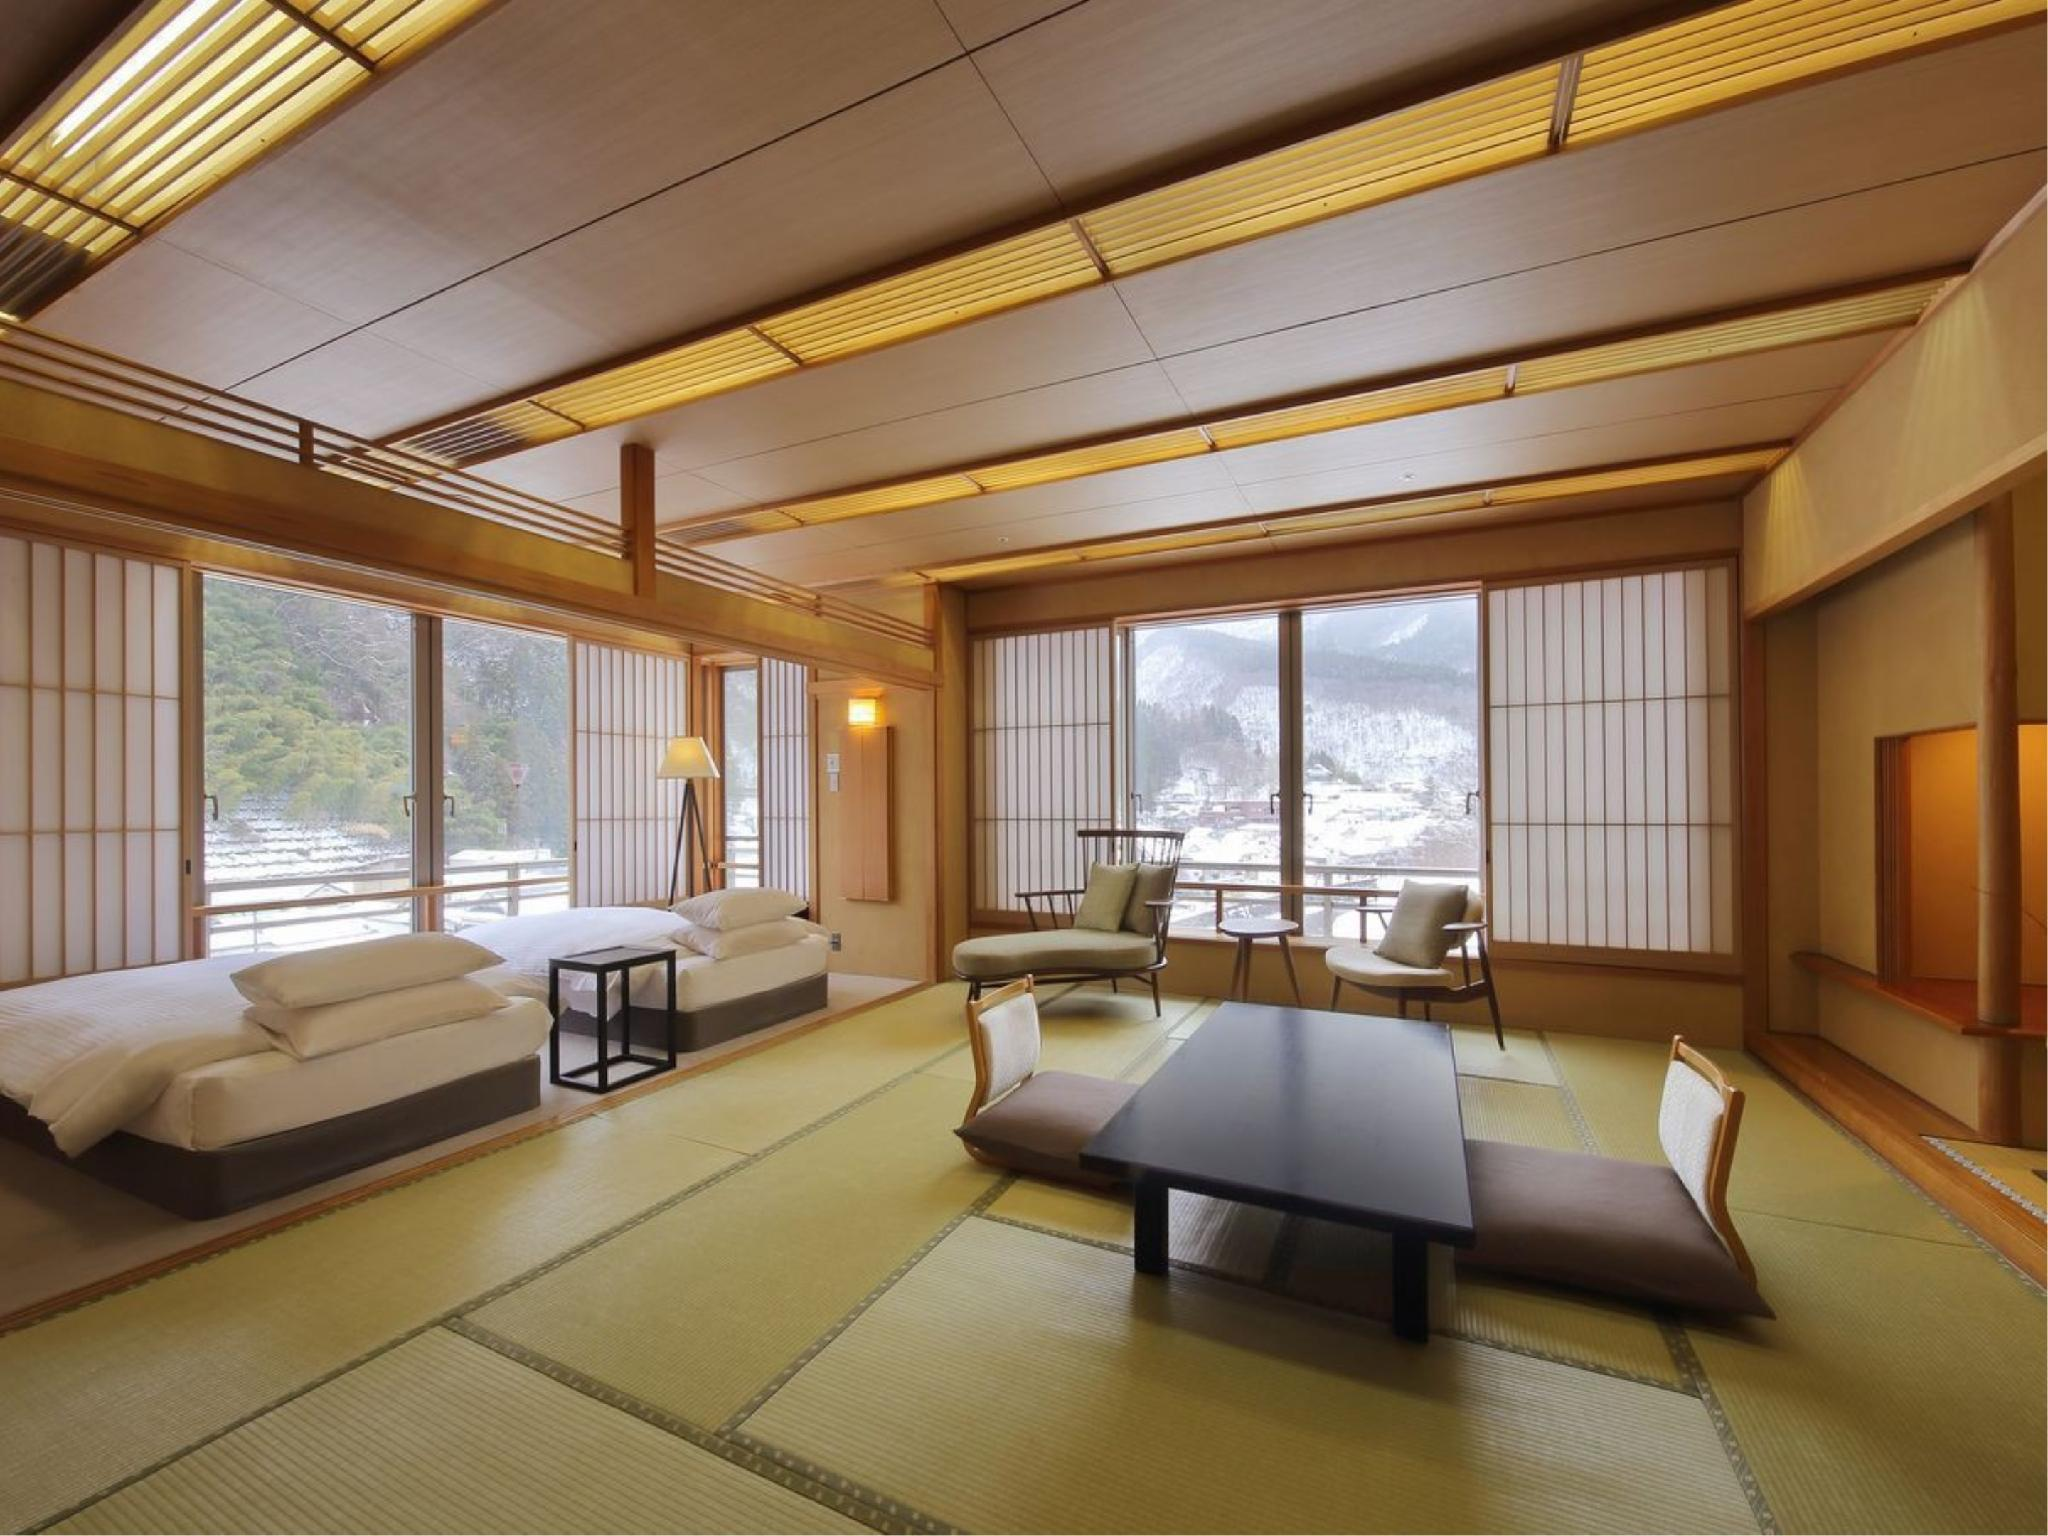 슈페리어 다다미 침대 객실(본관/다다미 객실+트윈/실내히노키탕) (Superior Japanese/Western-style Room with Cypress Indoor Bath (Japanese-style Room + Twin Room, Main Building))